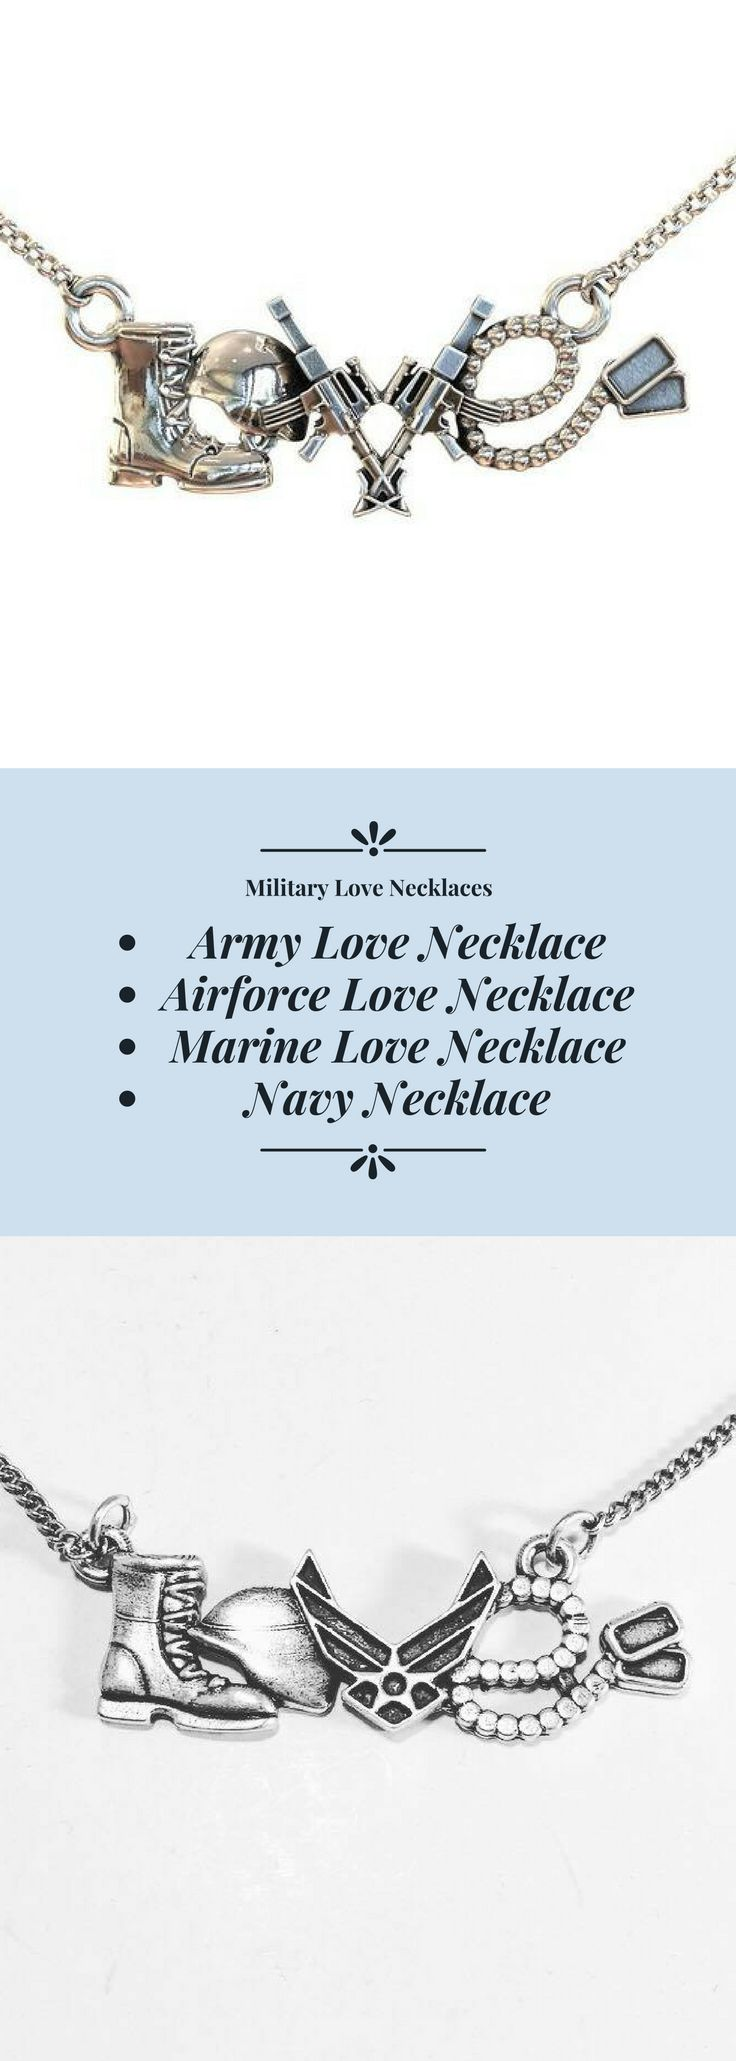 The perfect necklace whether you're in the military, a significant other, family member or someone you truly care about.